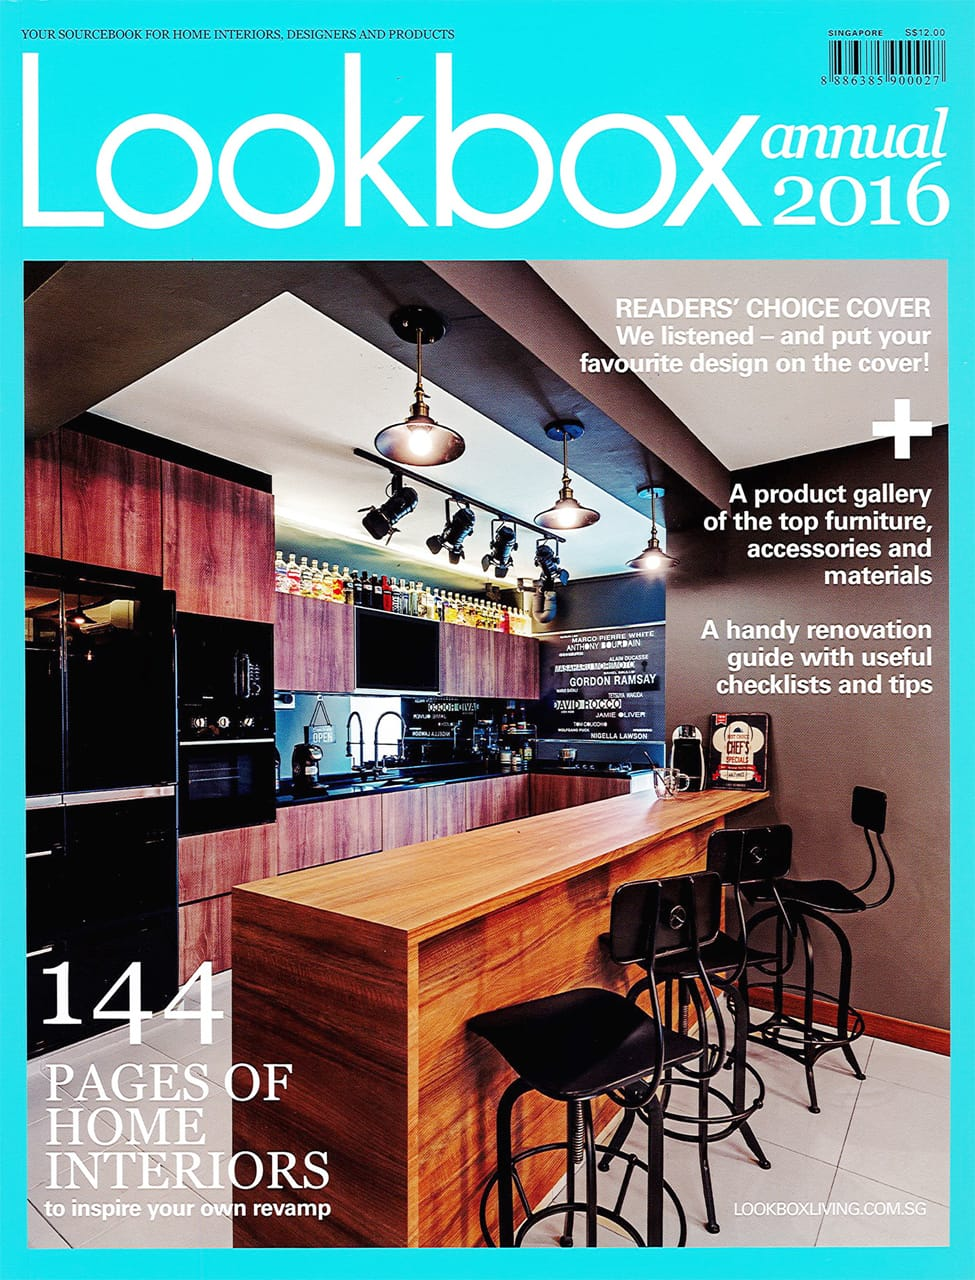 Lookbox Annual 2016